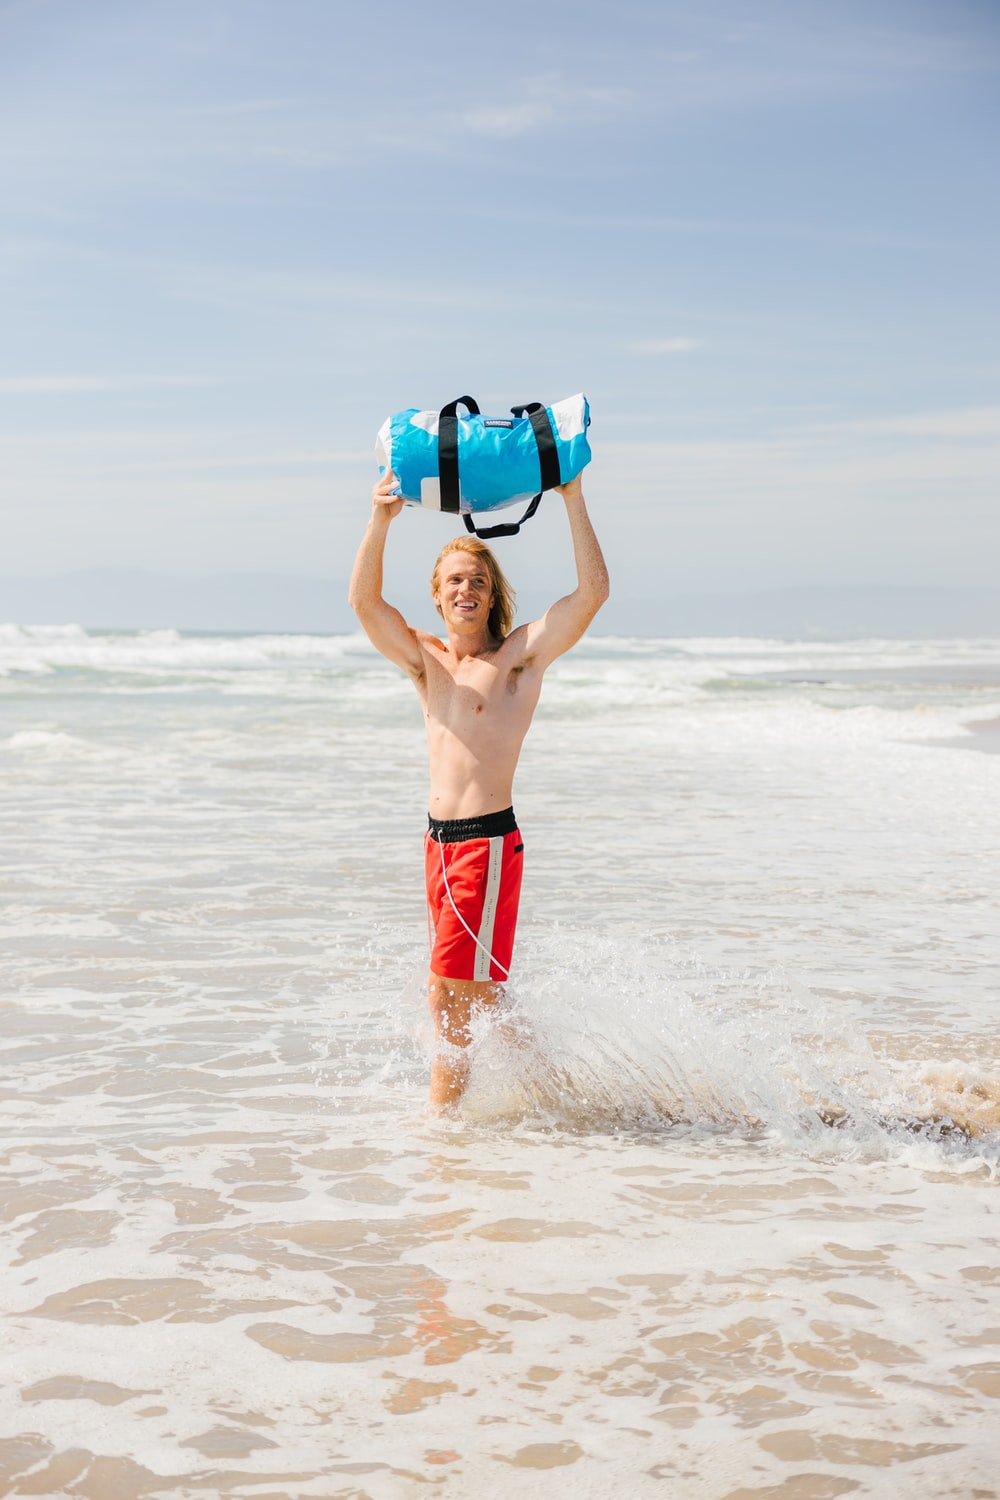 man in blue and red shorts on beach during daytime